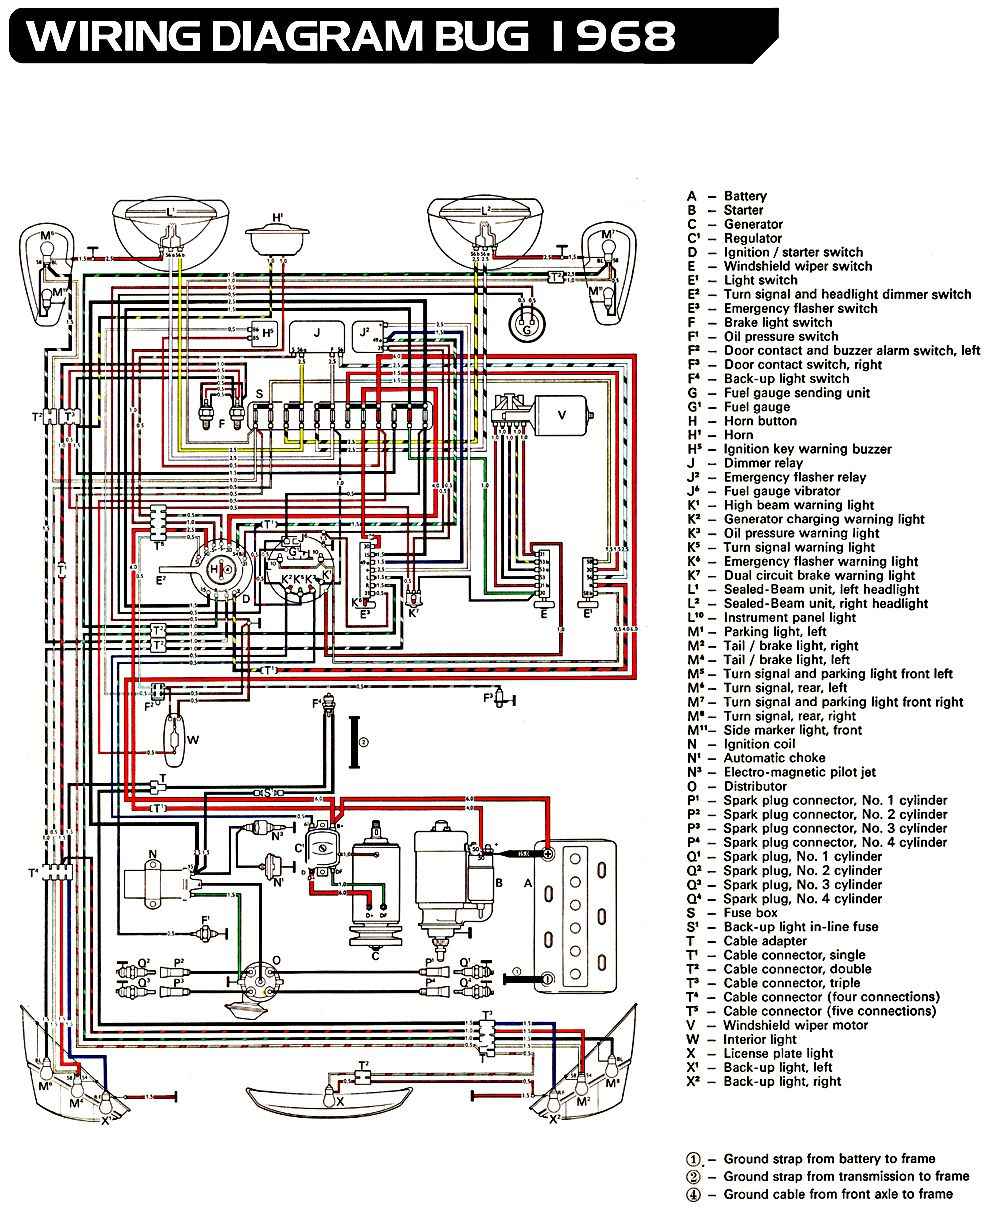 3a1908112d3826270ed5e3be362292bf vw bug ignition wiring diagram 73 vw wiring diagram free 1965 vw beetle wiring diagram at mifinder.co